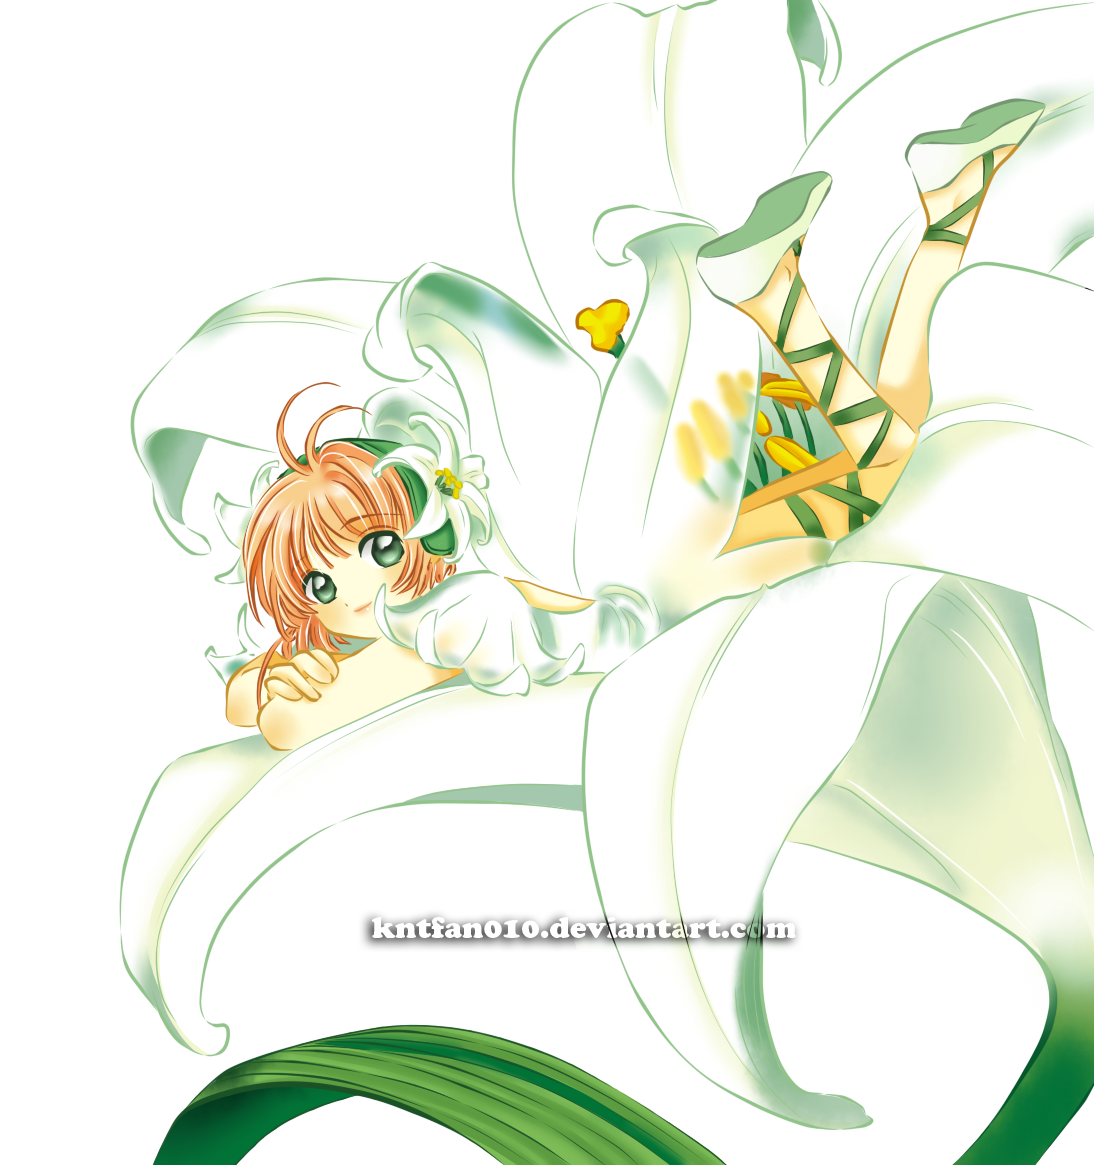 the fairy by kntfan010